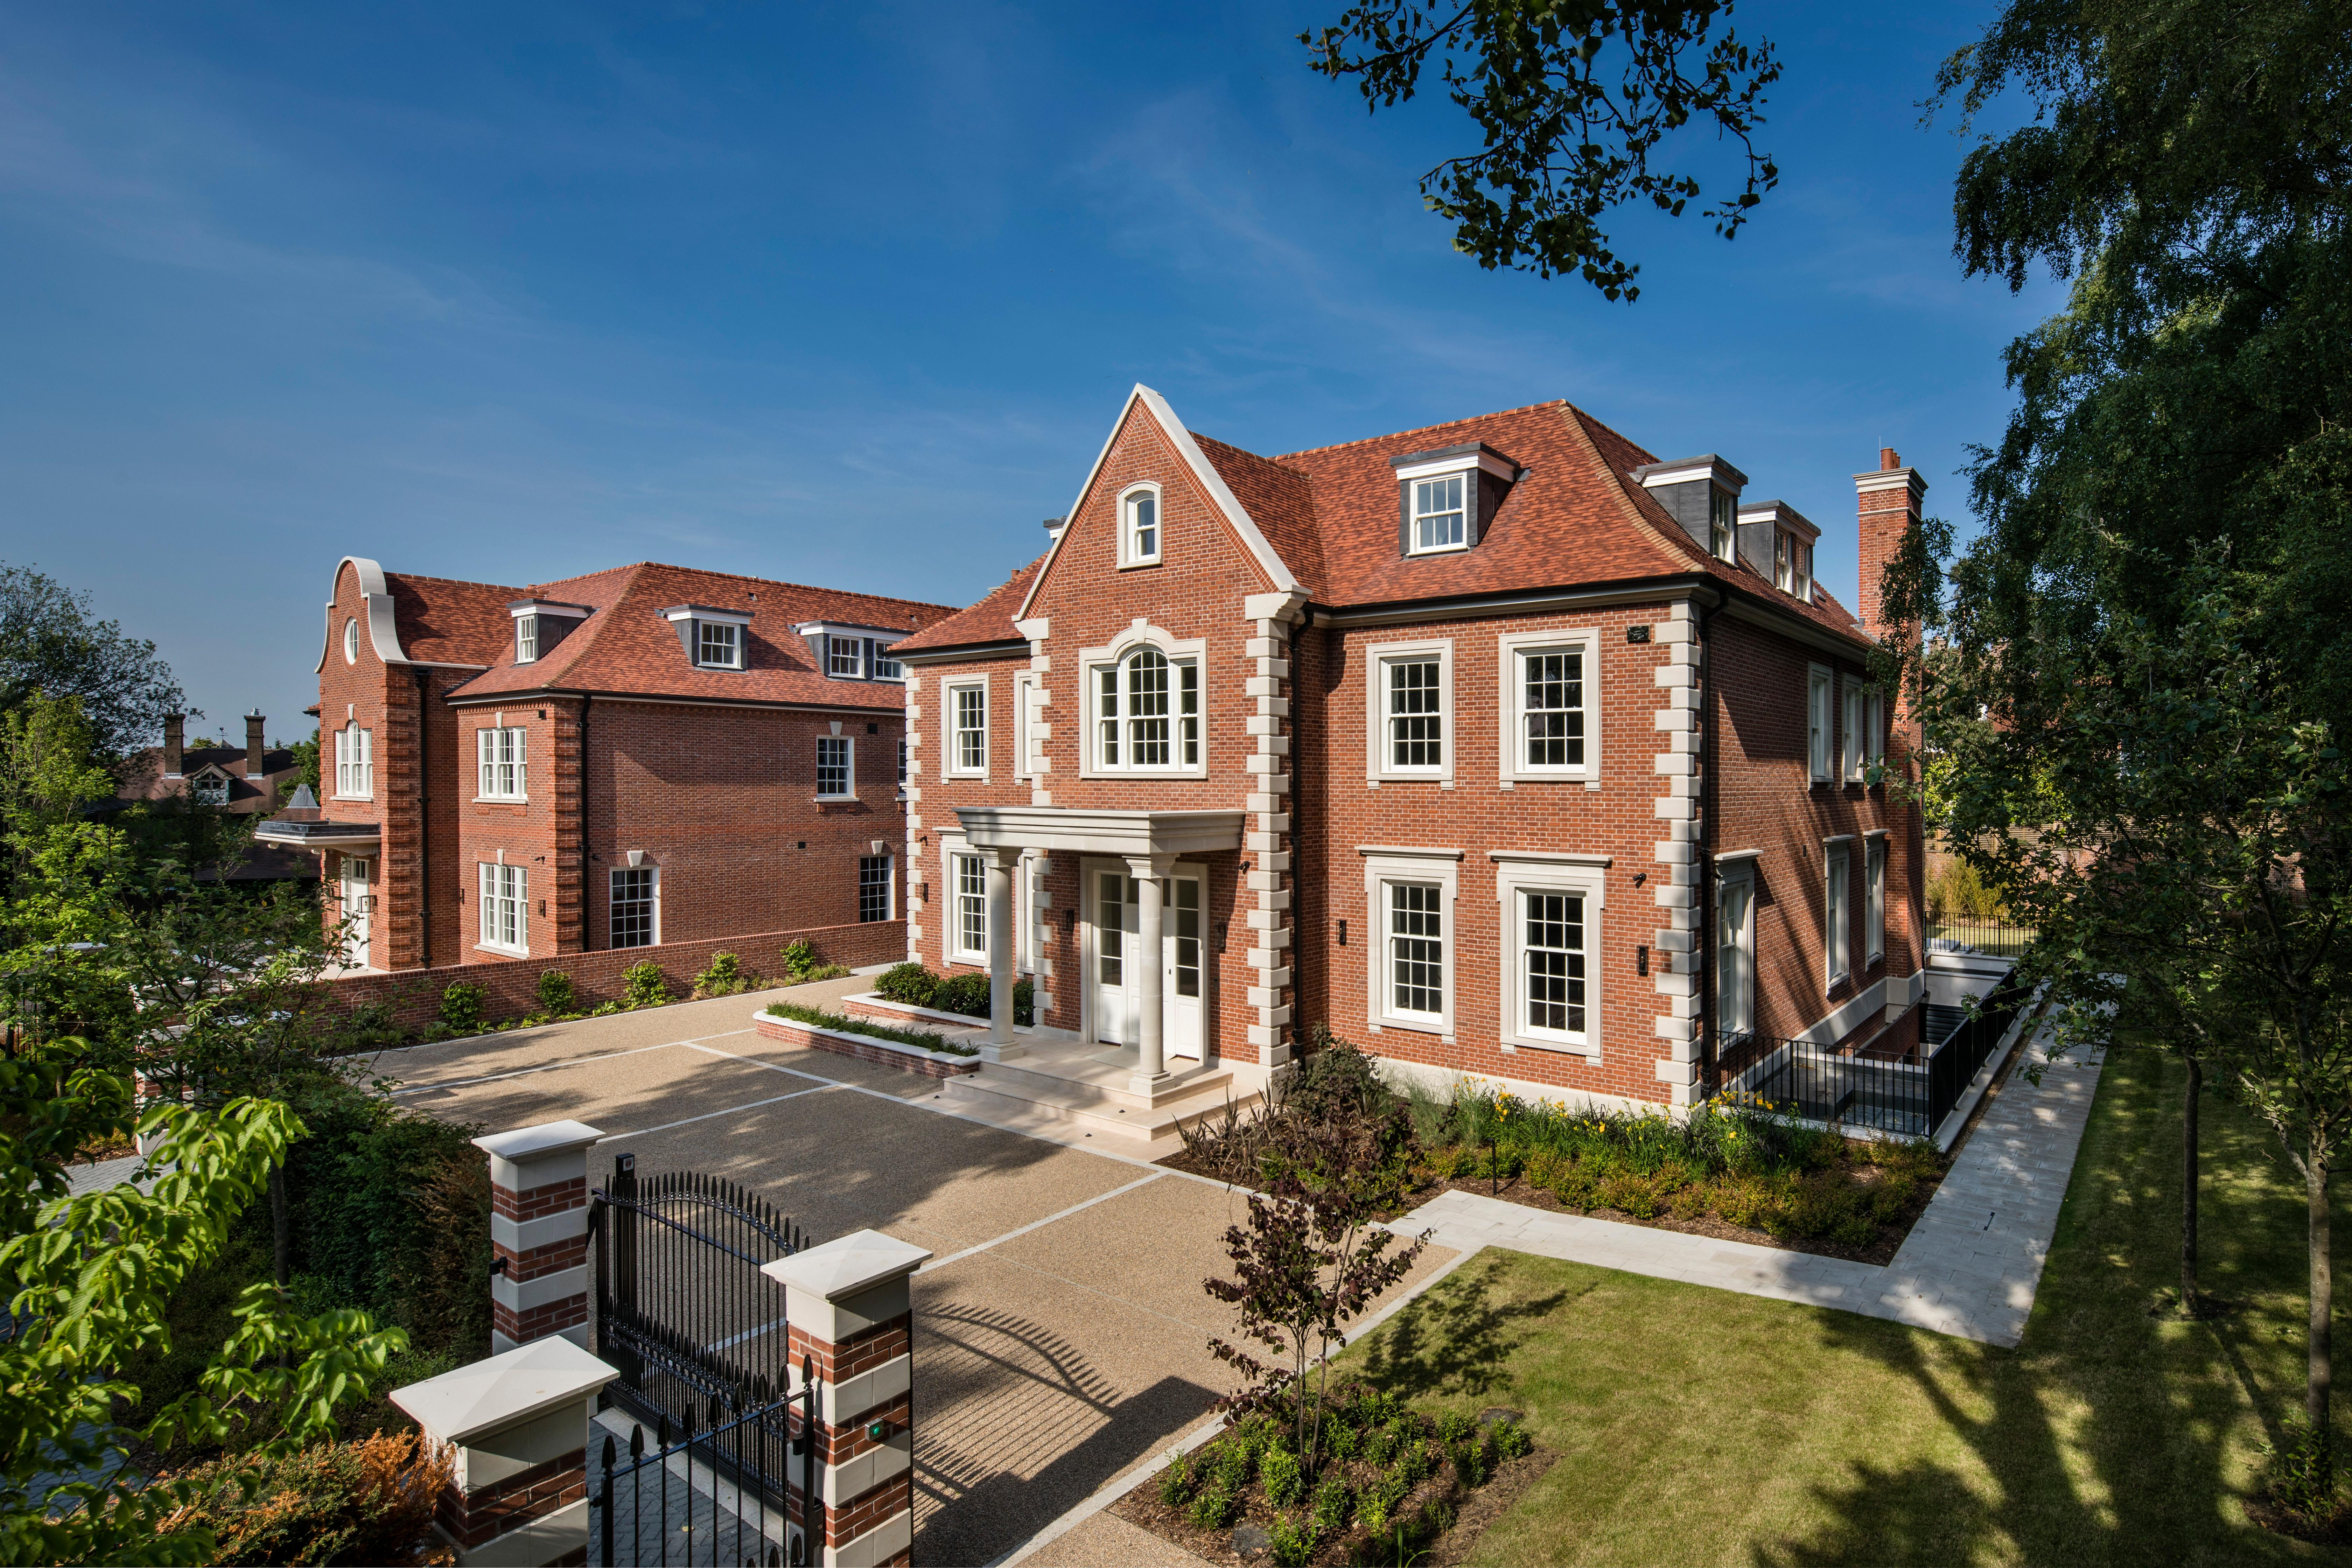 This eight-bedroom mansion is £22 million through Glentree